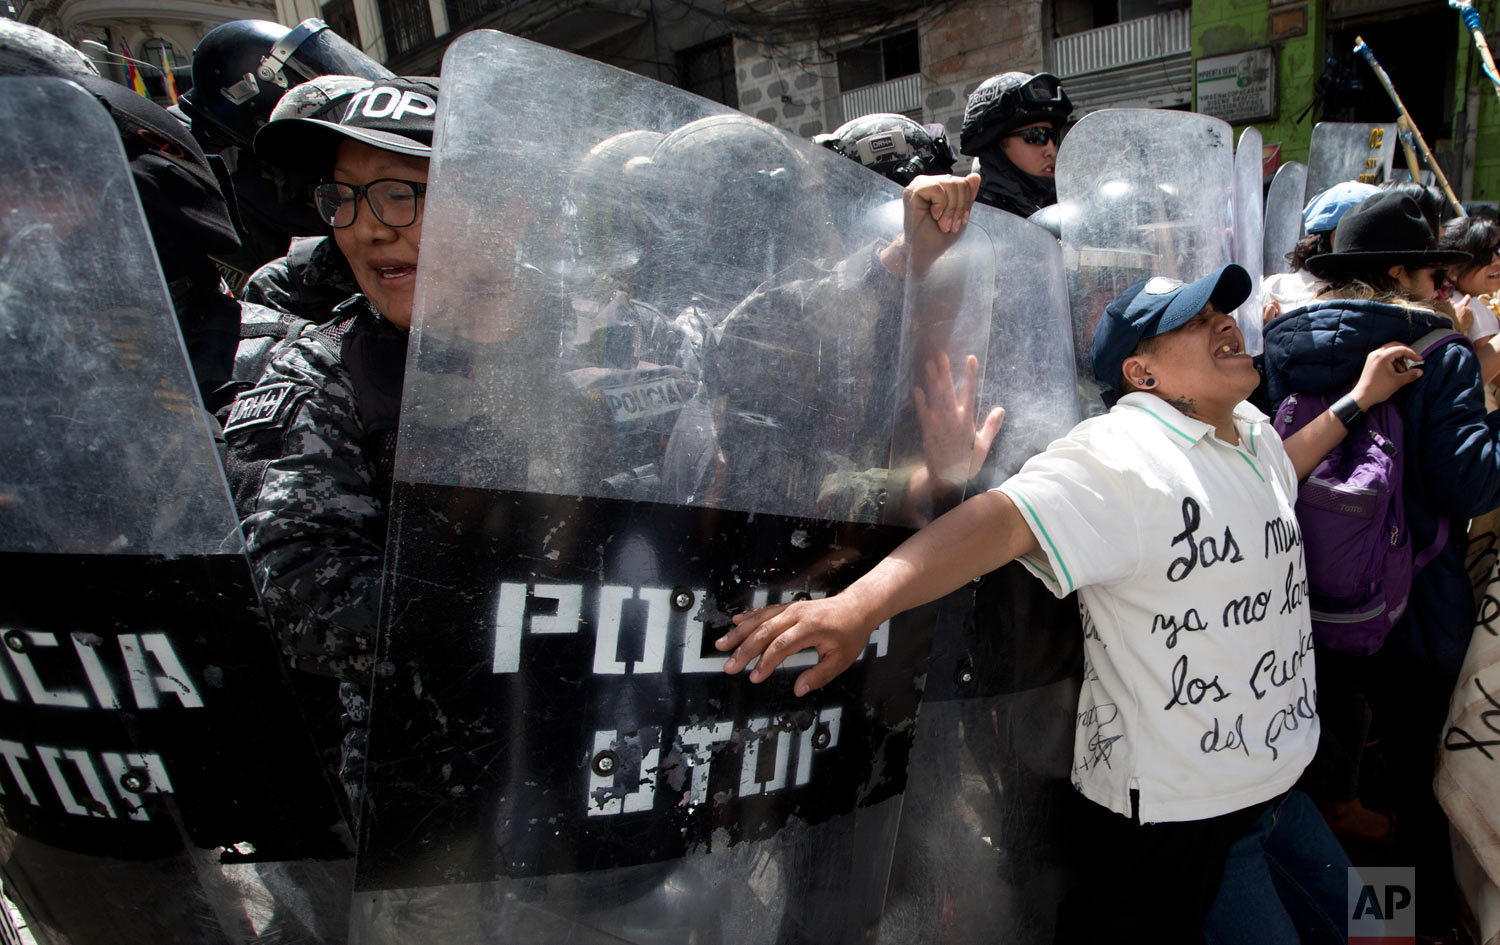 In this March 8, 2019 photo, a woman pushes against riot police who are preventing demonstrators from reaching government palace during a march marking International Women's Day, in La Paz, Bolivia. (AP Photo/Juan Karita)